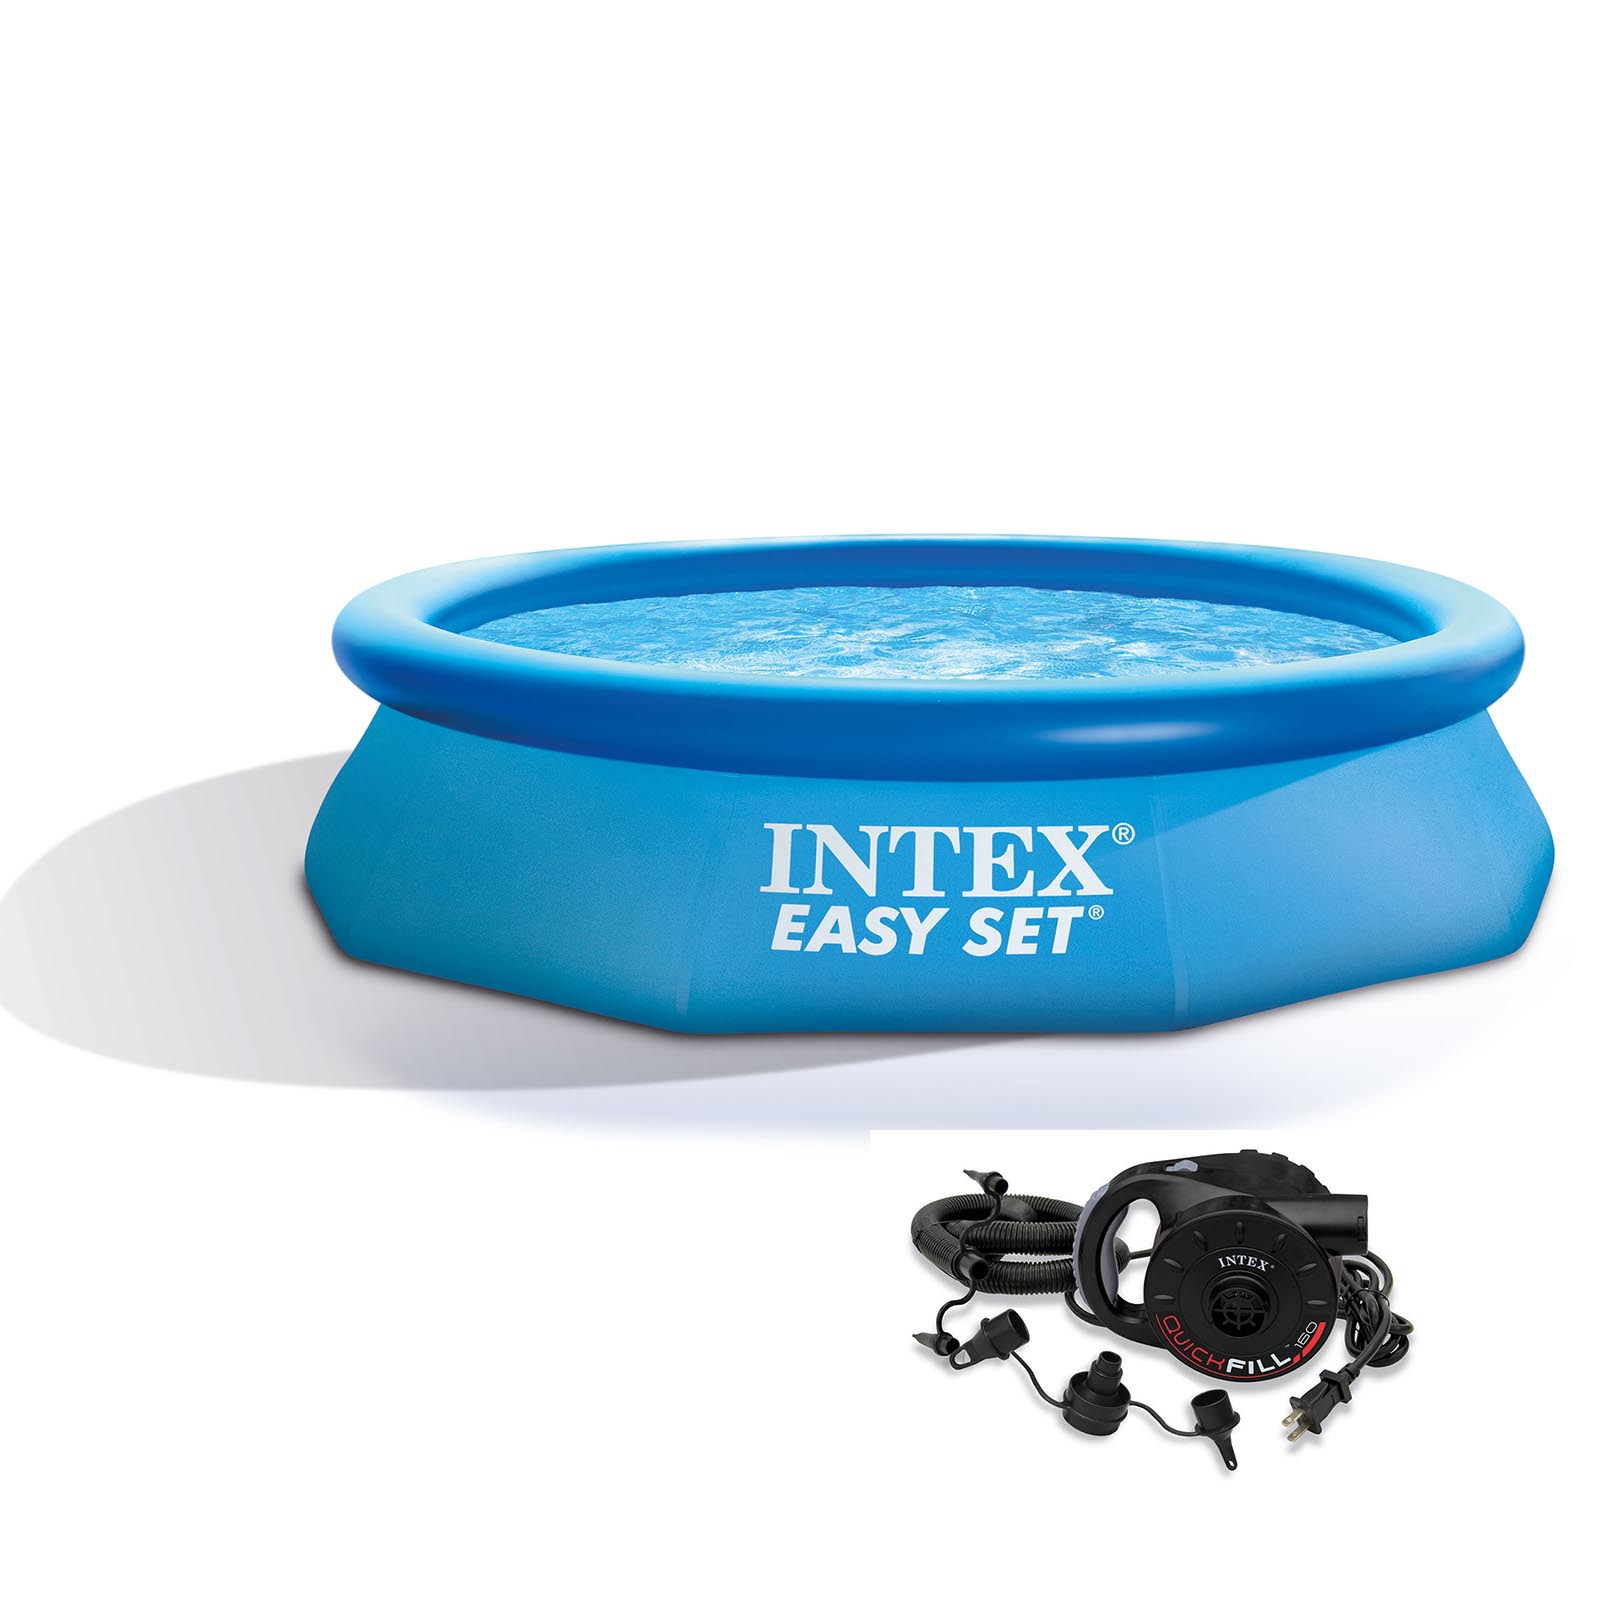 "Intex 10' x 30"" Easy Set Inflatable Above Ground Swimming Pool with Air Pump by Intex"